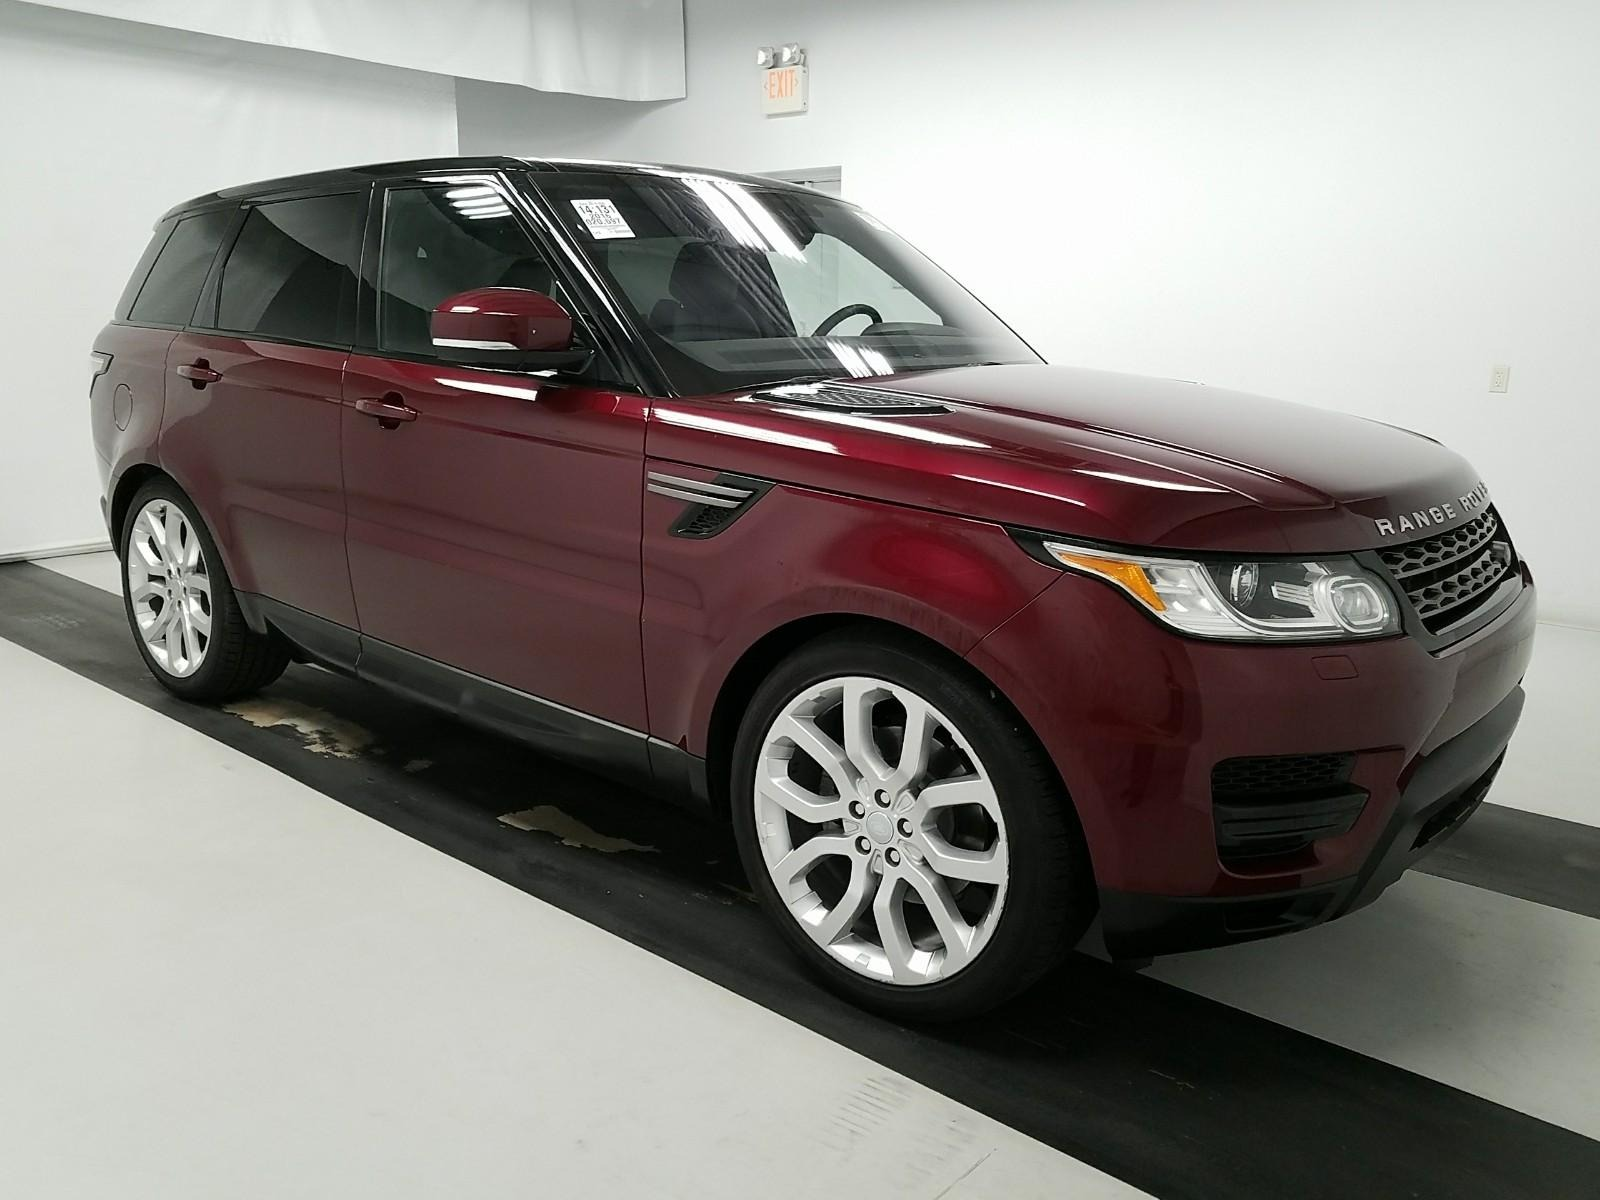 2016 land rover range rover sport se stock 18194 for sale near albany ny ny land rover. Black Bedroom Furniture Sets. Home Design Ideas